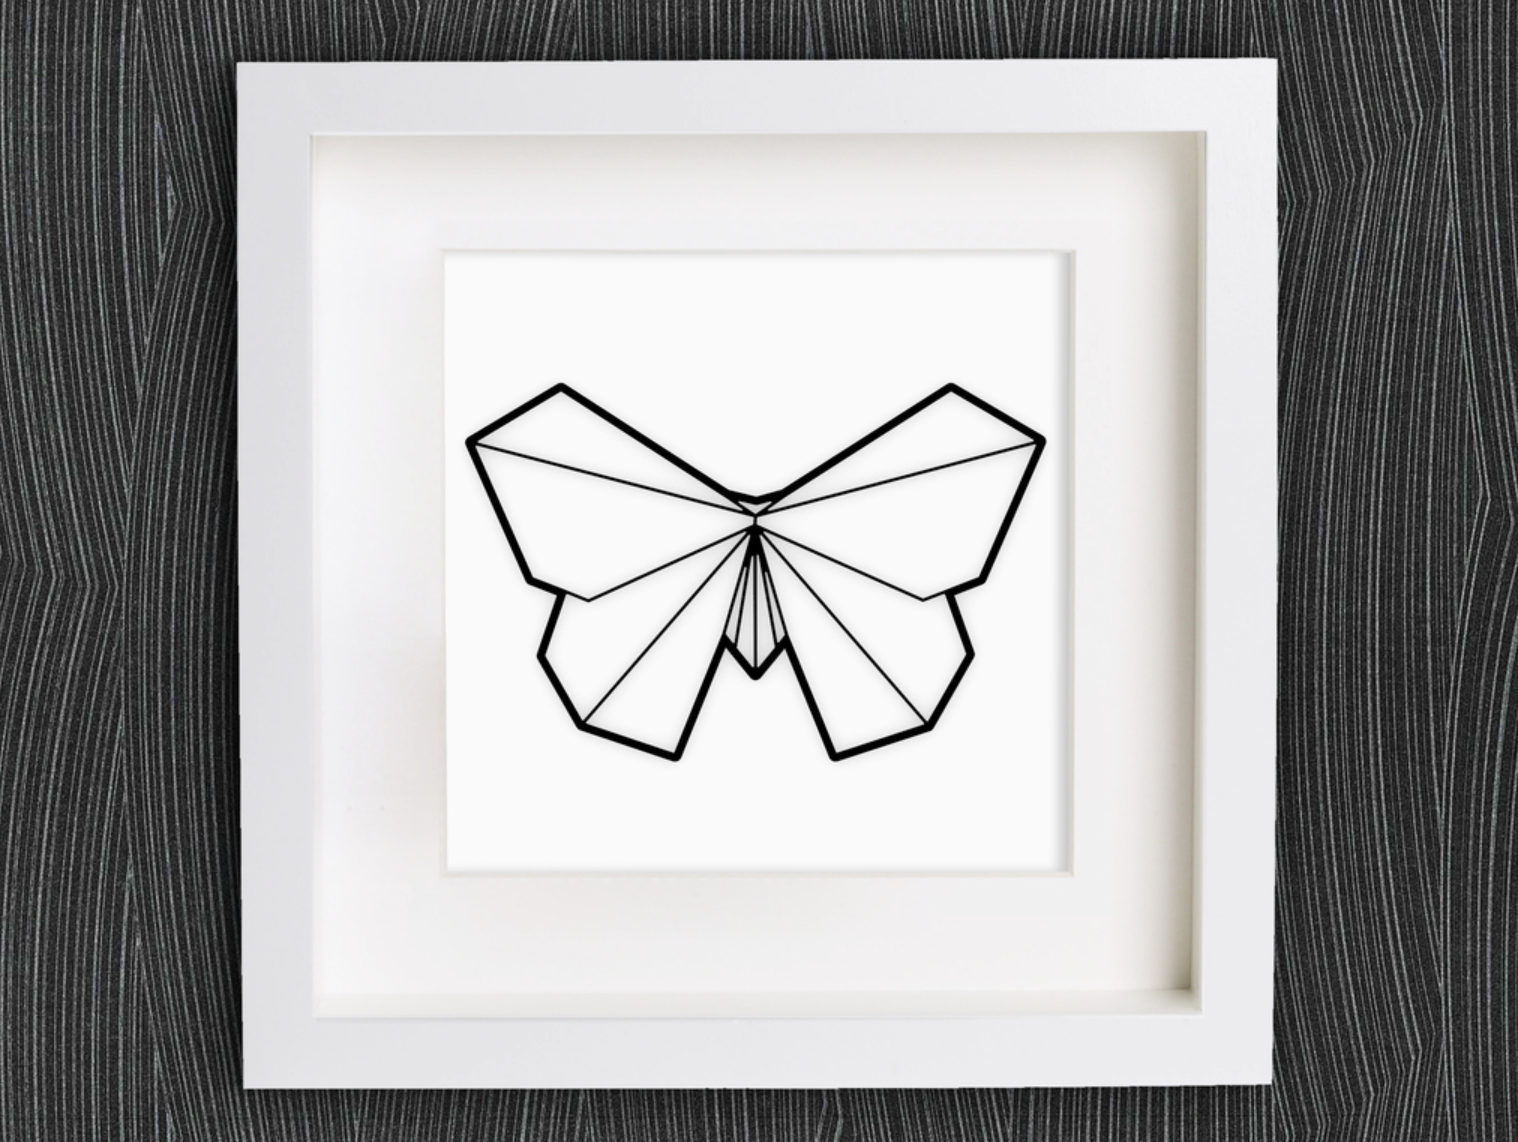 Capture d'écran 2017-12-06 à 17.12.27.png Download free STL file Customizable Origami Butterfly • 3D printable model, MightyNozzle